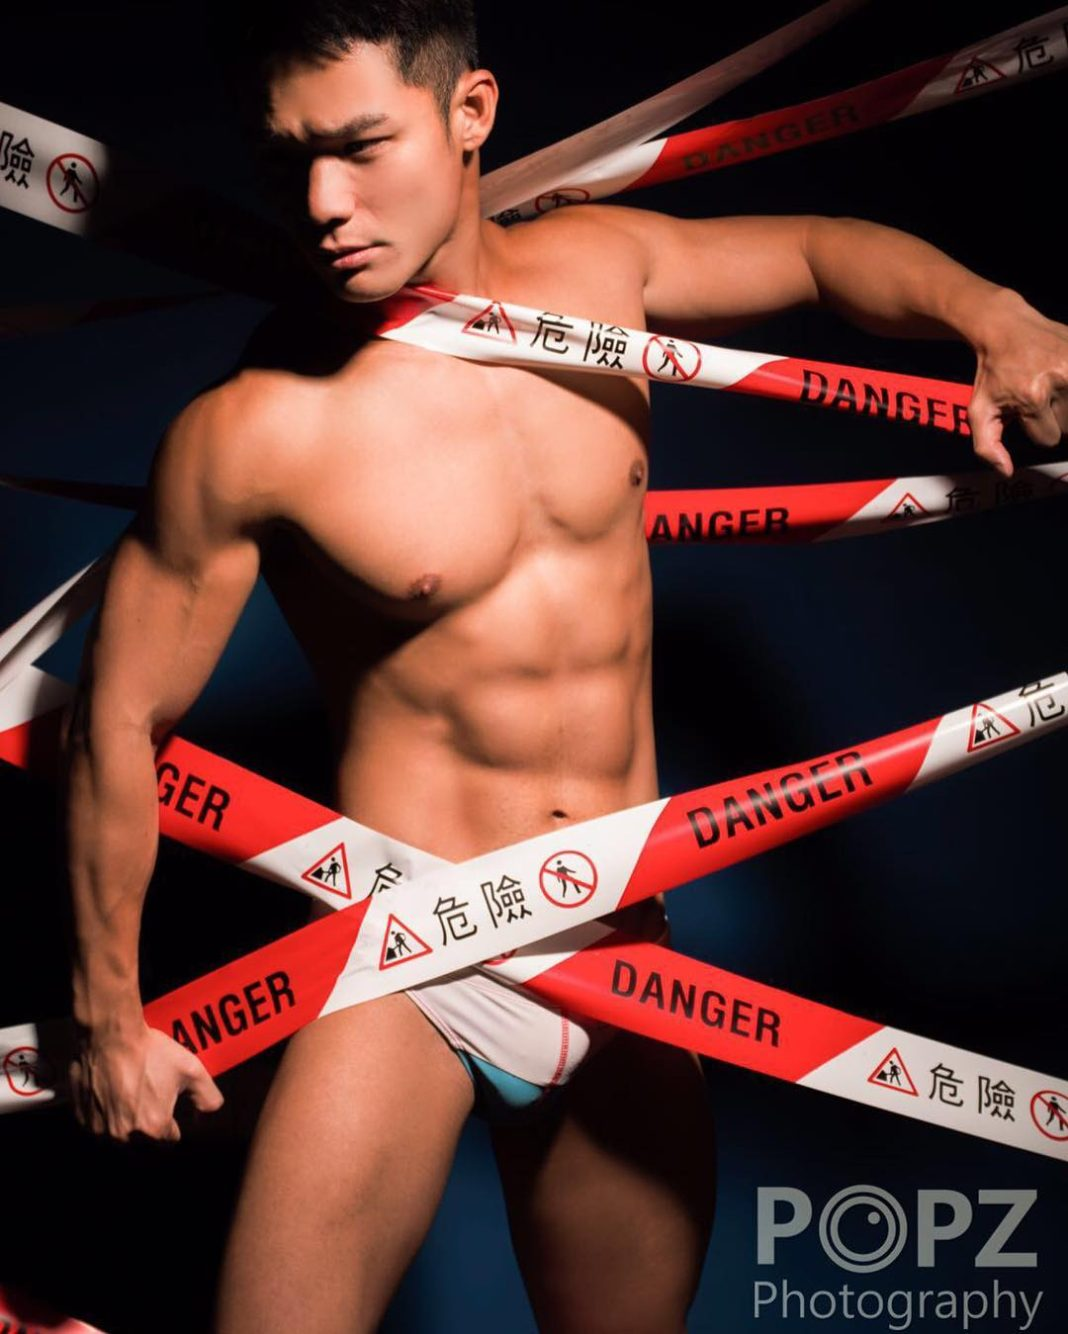 from Matias hunky gay model